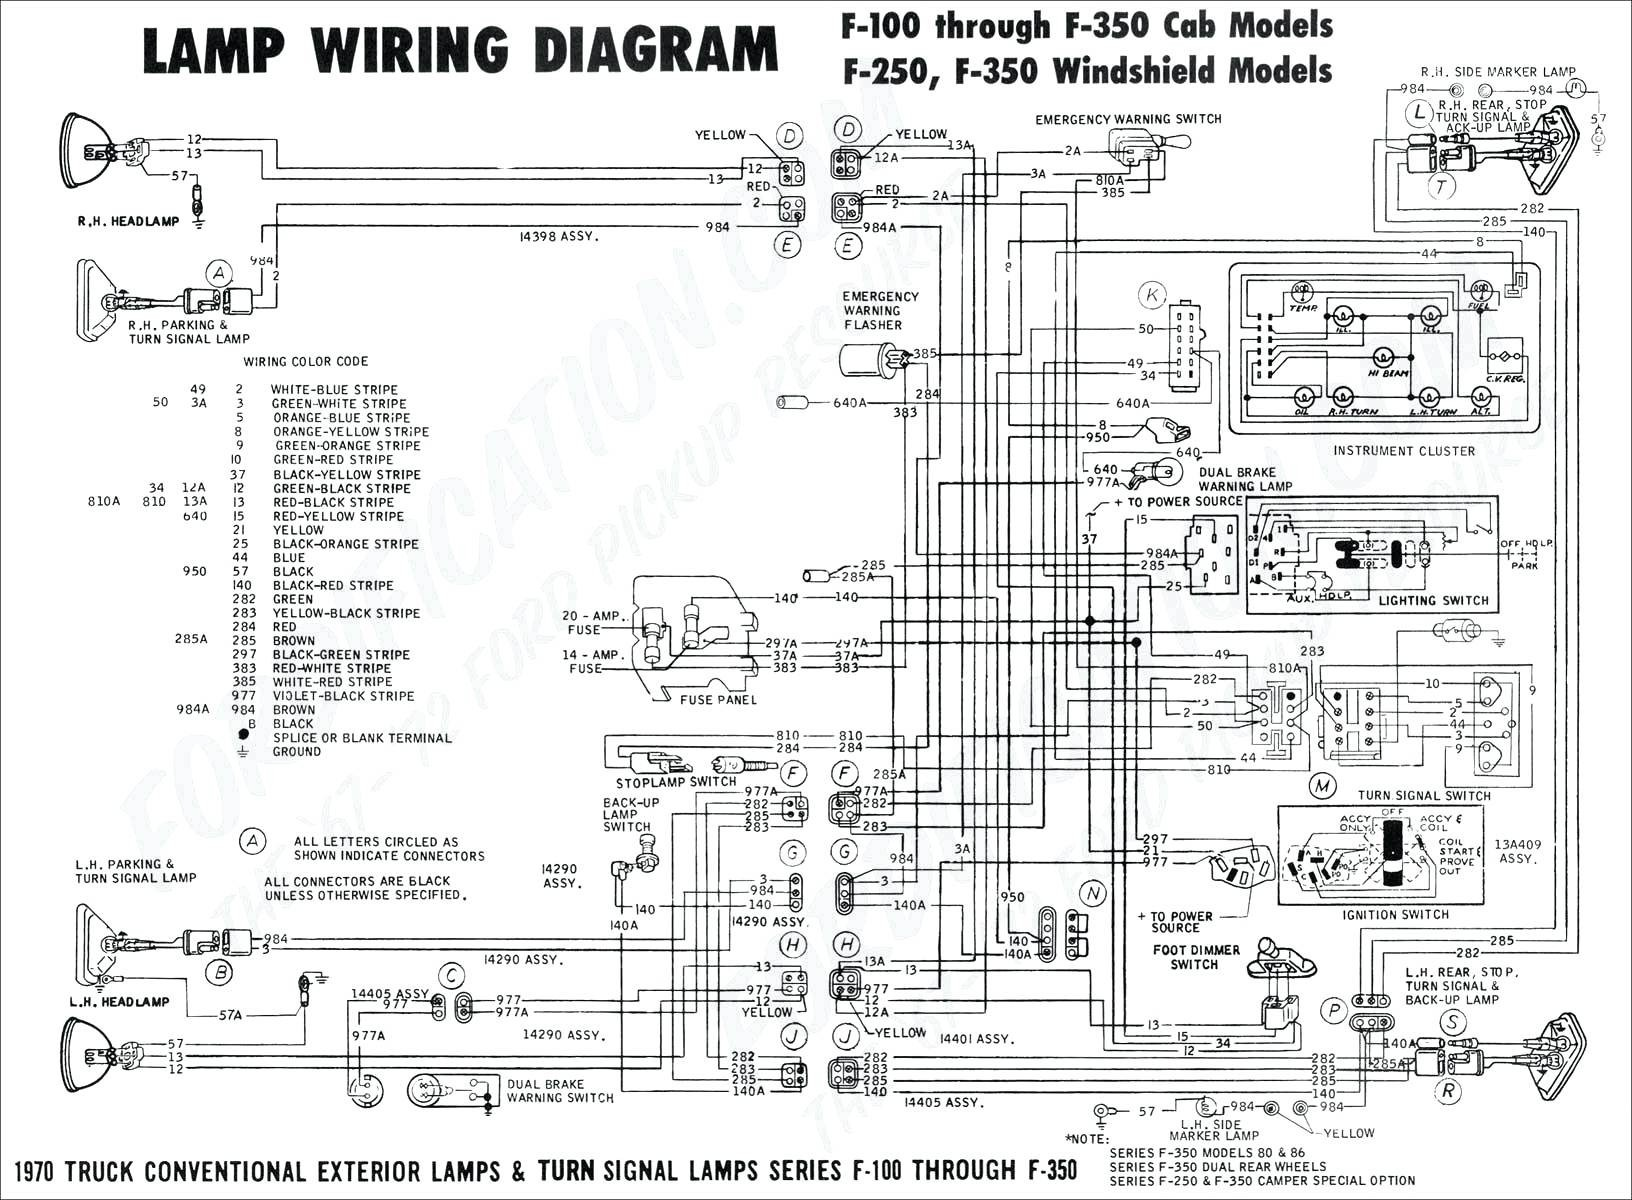 Ford Expedition 2000 Engine Wiring Schematic Auto Electrical 1963 C10 Chevy Truck Diagram Related With 2004 Chevrolet Silverado